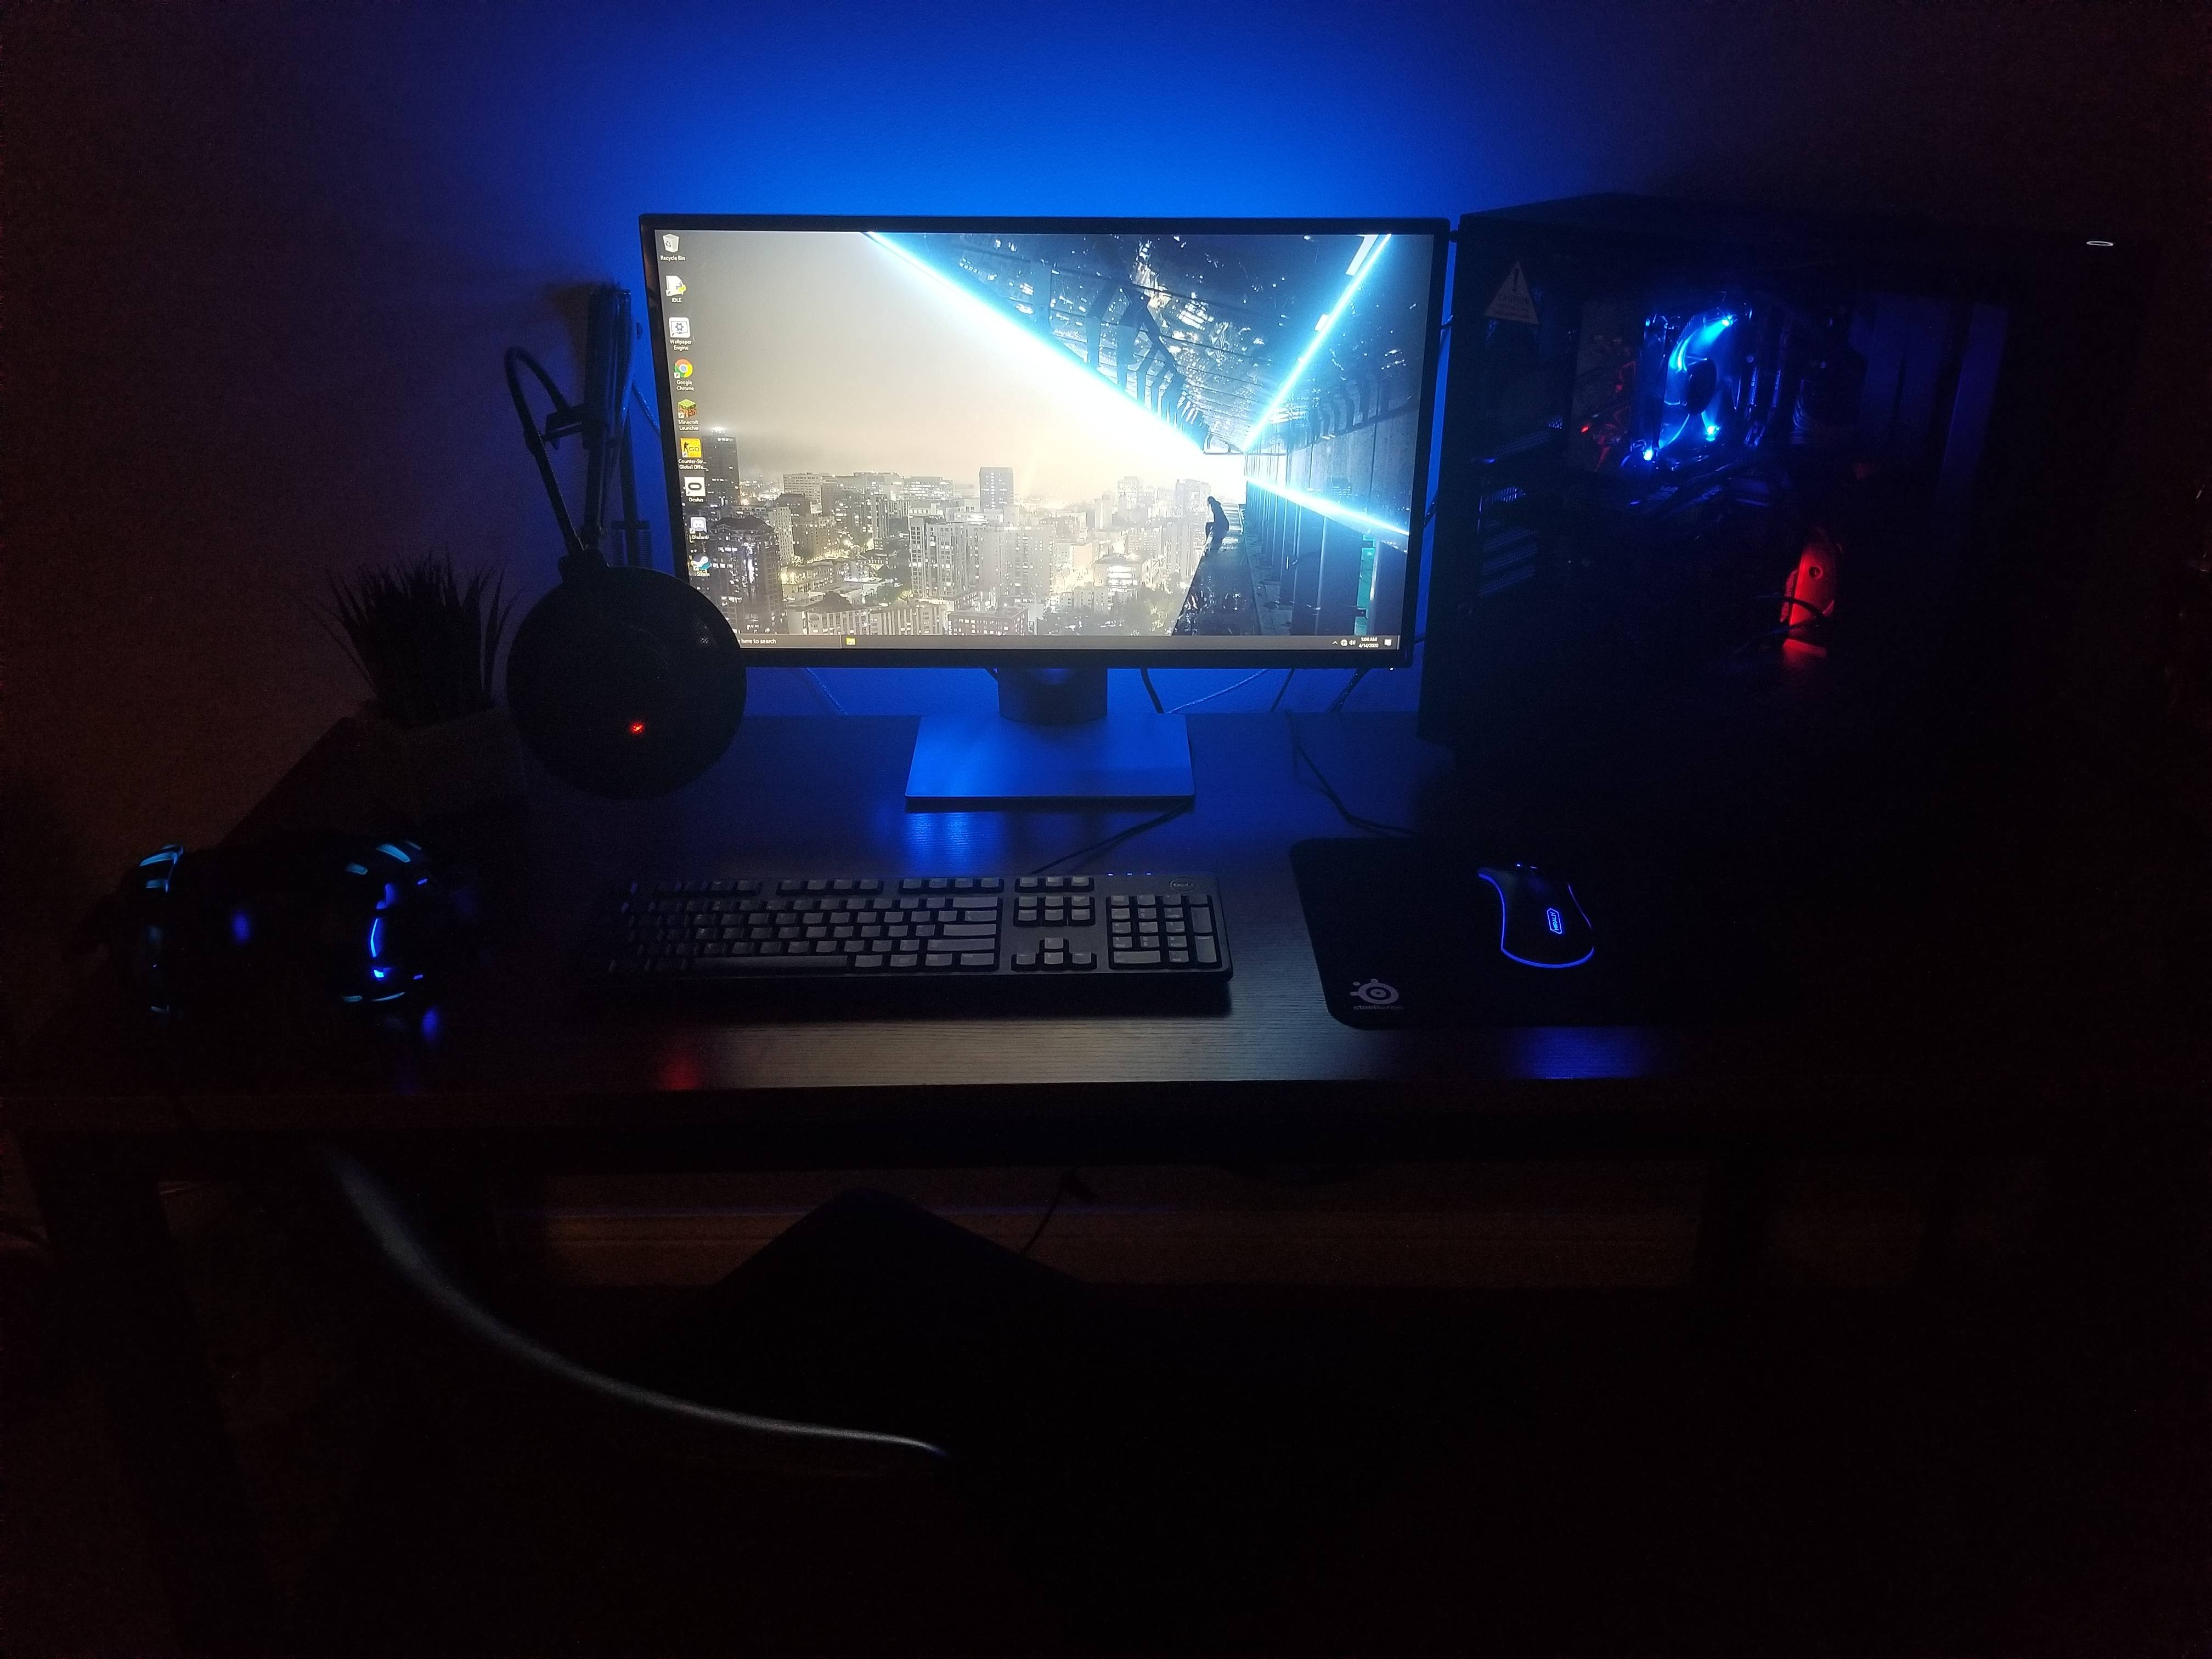 Mitchellsmy8's Setup - Simple Blue Gaming Setup | Scooget